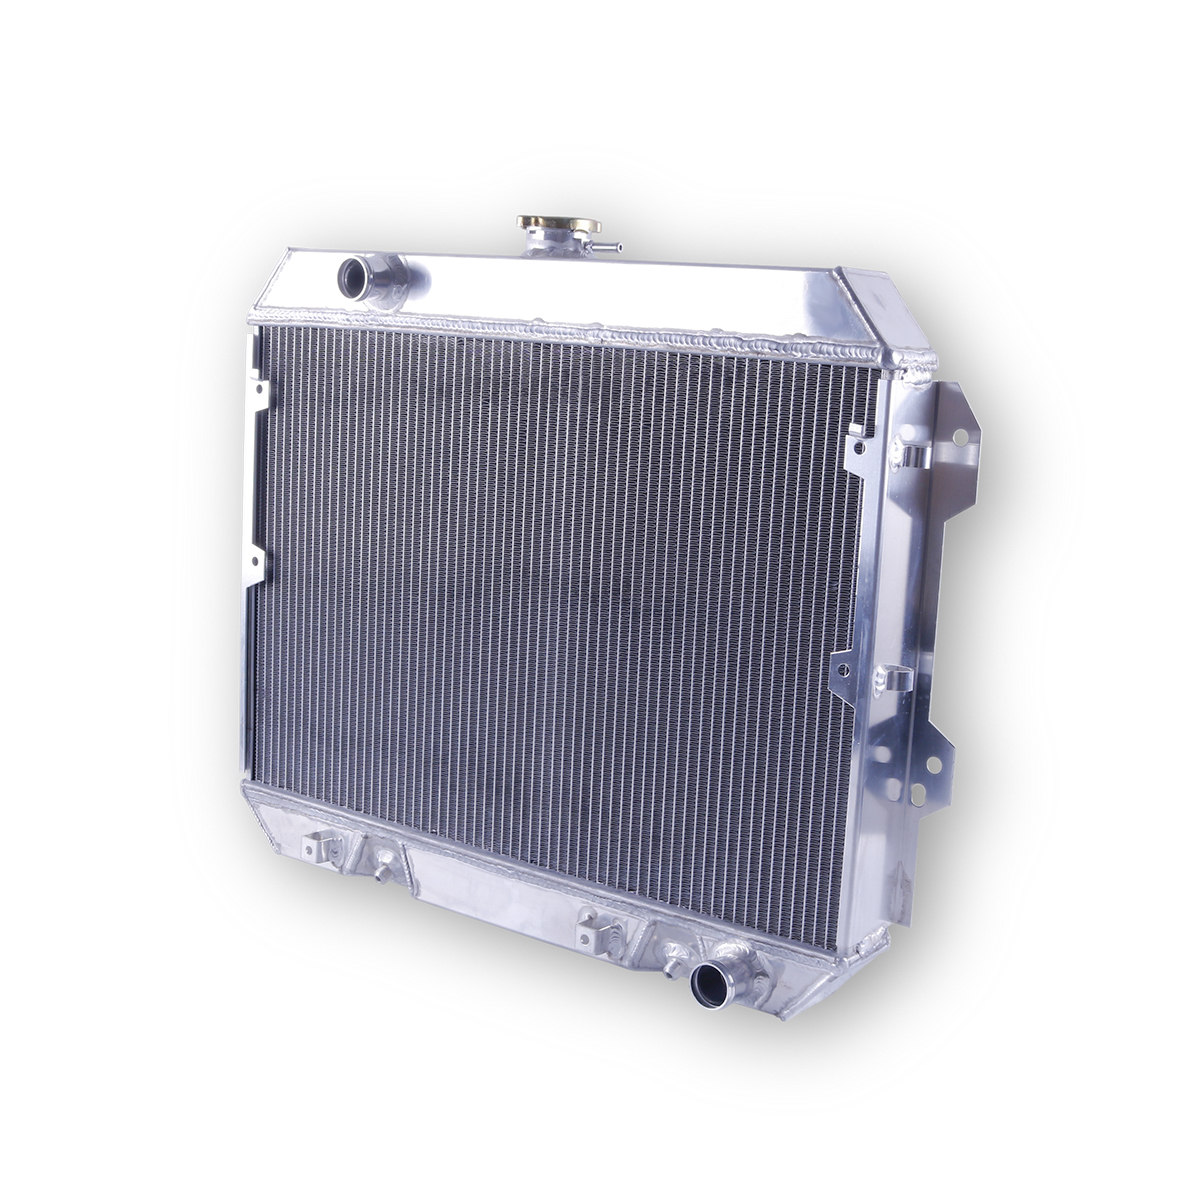 FIT FOR Datsun 75 76-82 All 3 ROWS ALL ALUMINUM RADIATOR